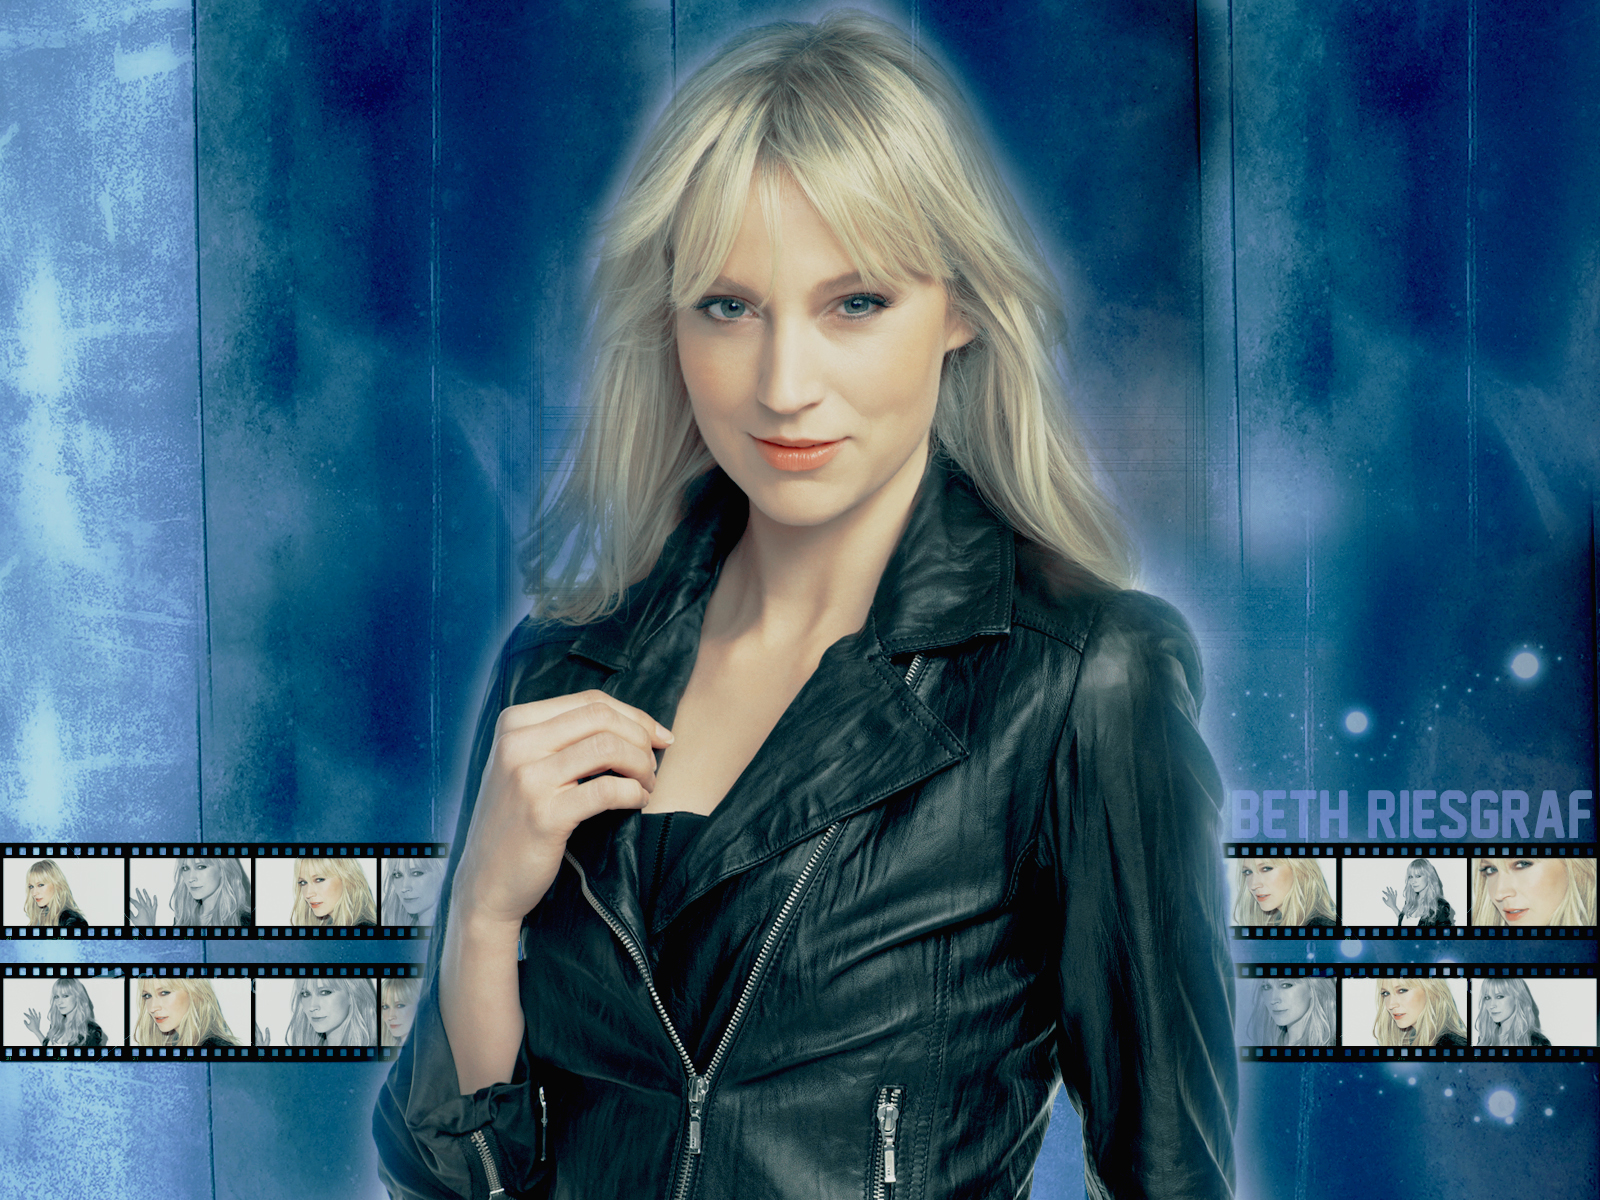 Beth Riesgraf Wallpaper by haunted-passion on DeviantArt